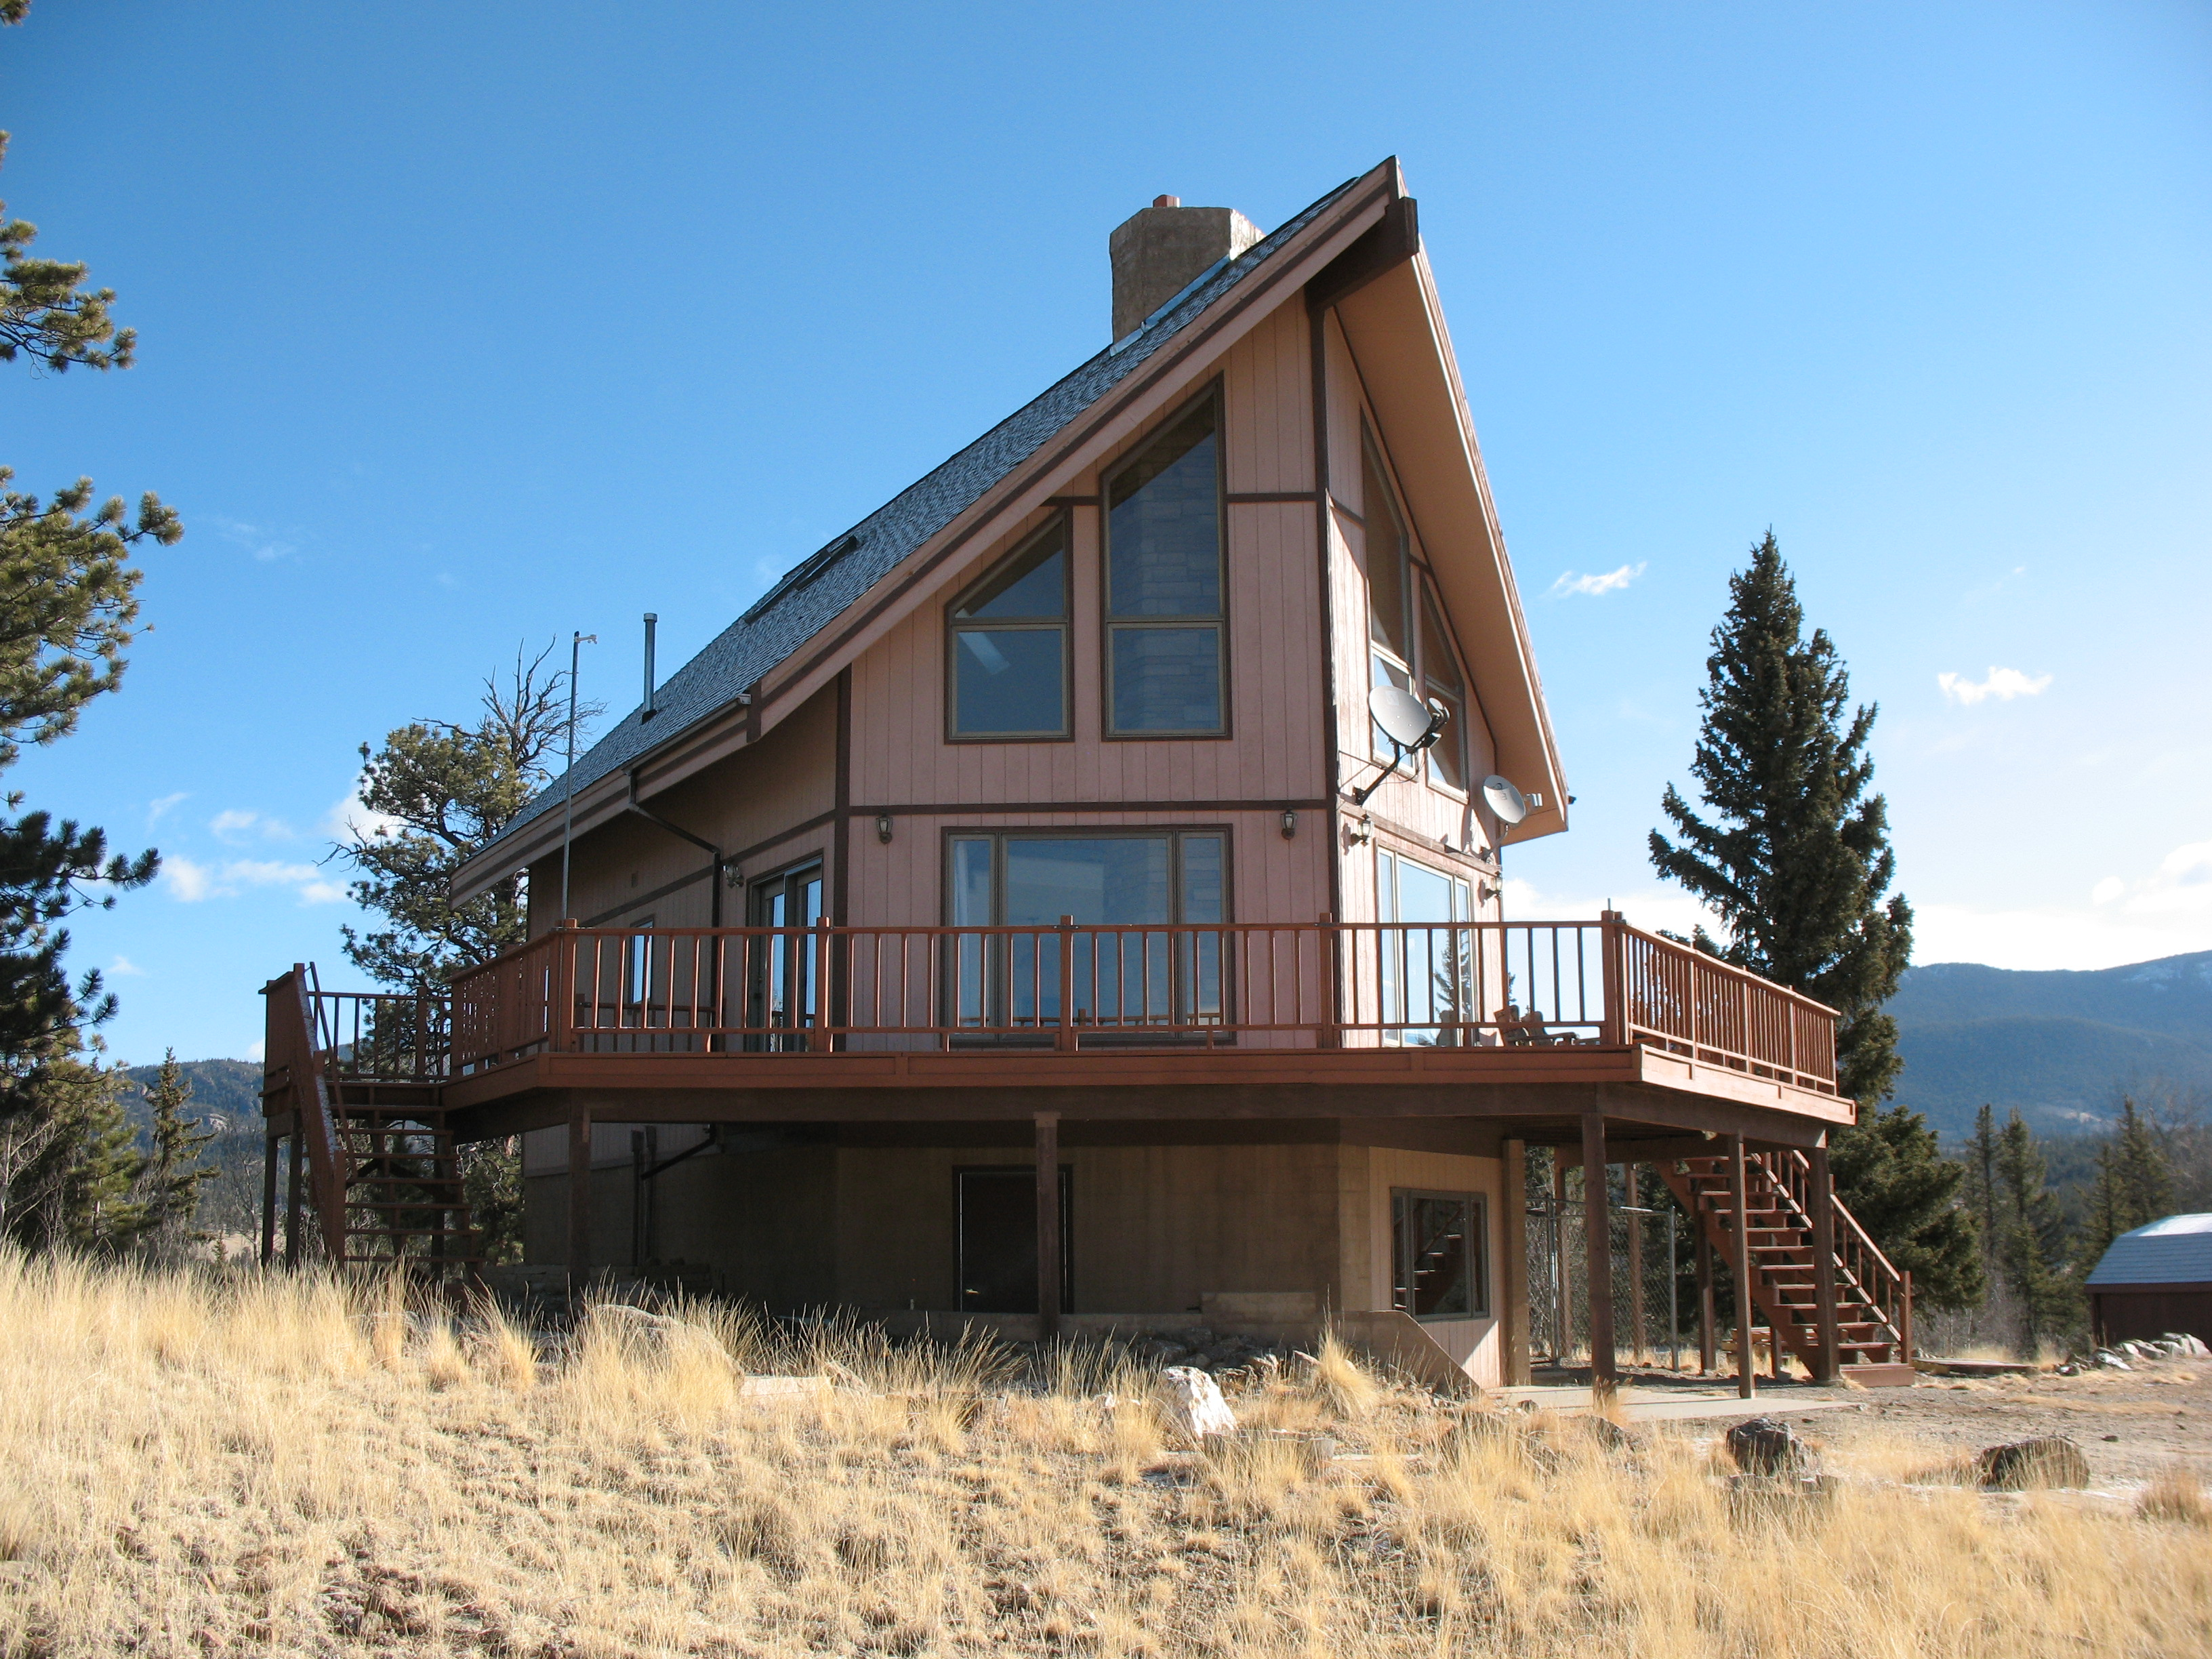 near listing listings me salida real houses home estate for house rent new co cabins sale colorado mls